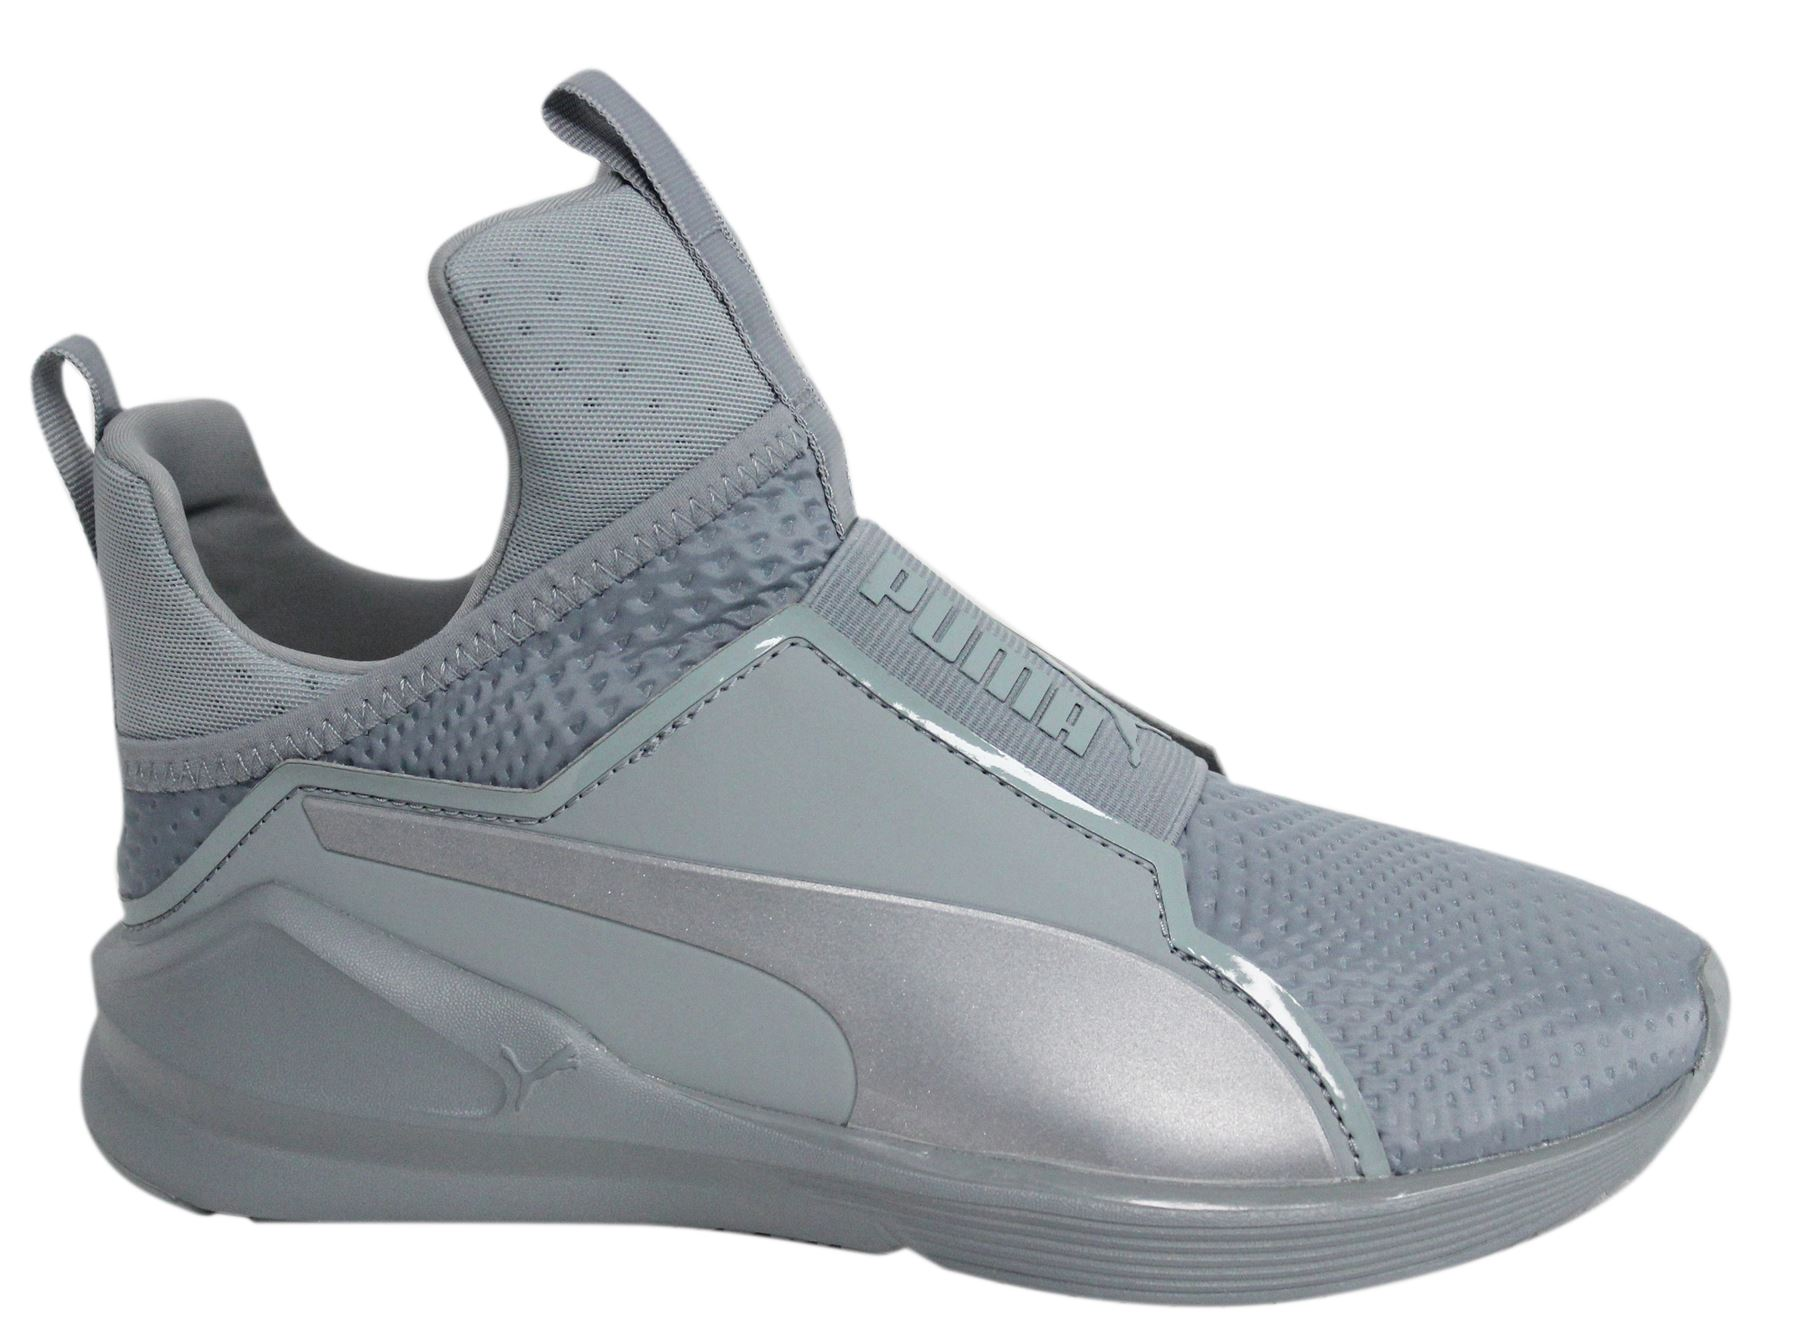 bf44d5887b3 Puma Fierce Quilted Slip On Grey Textile Womens Trainers 189418 02 ...